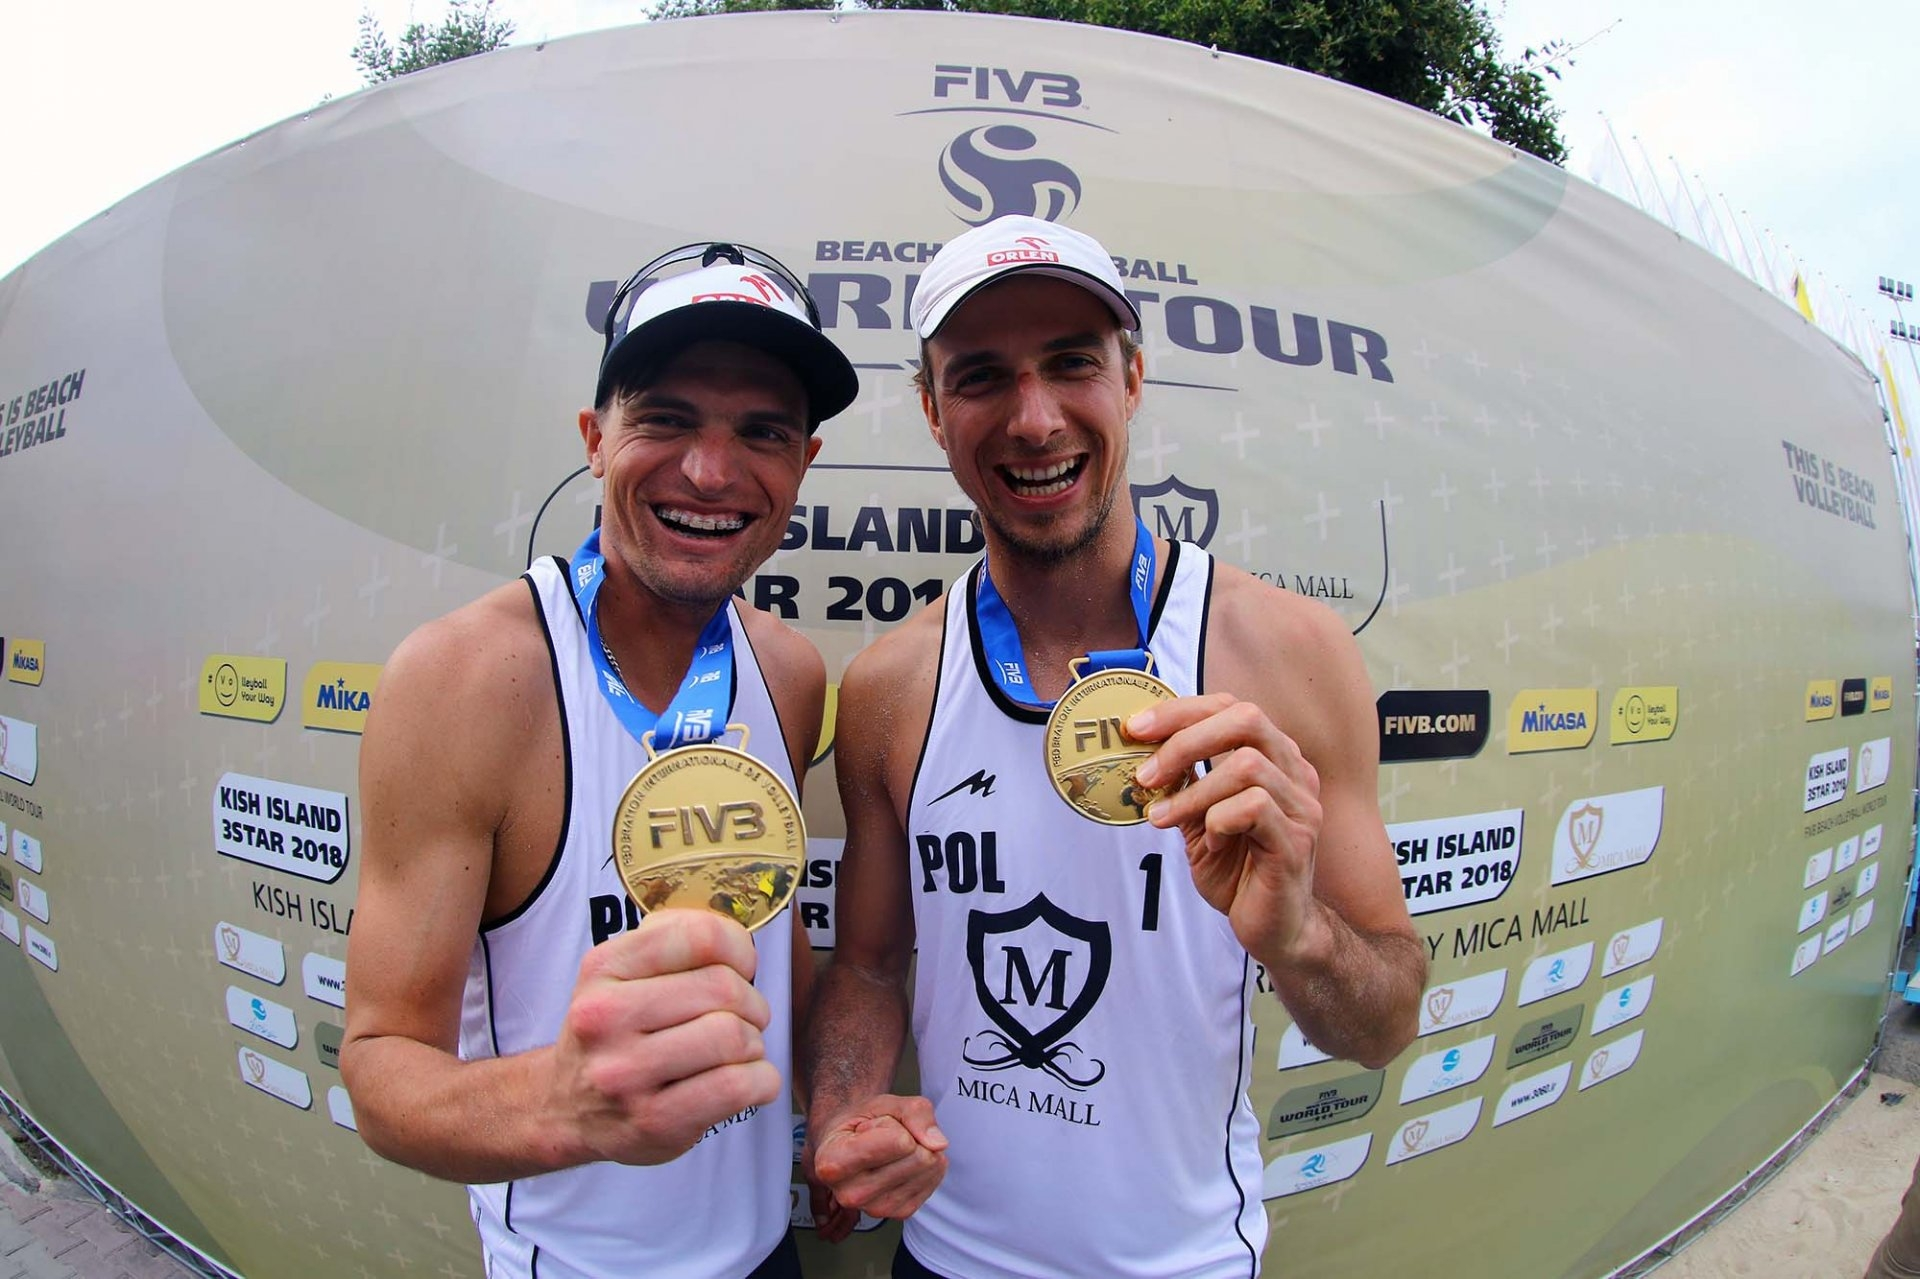 Poland's Jakub Szalankiewicz (left) and Mariusz Prudel celebrate their gold medal in the World Tour event in Kish Island (Photocredit: FIVB)